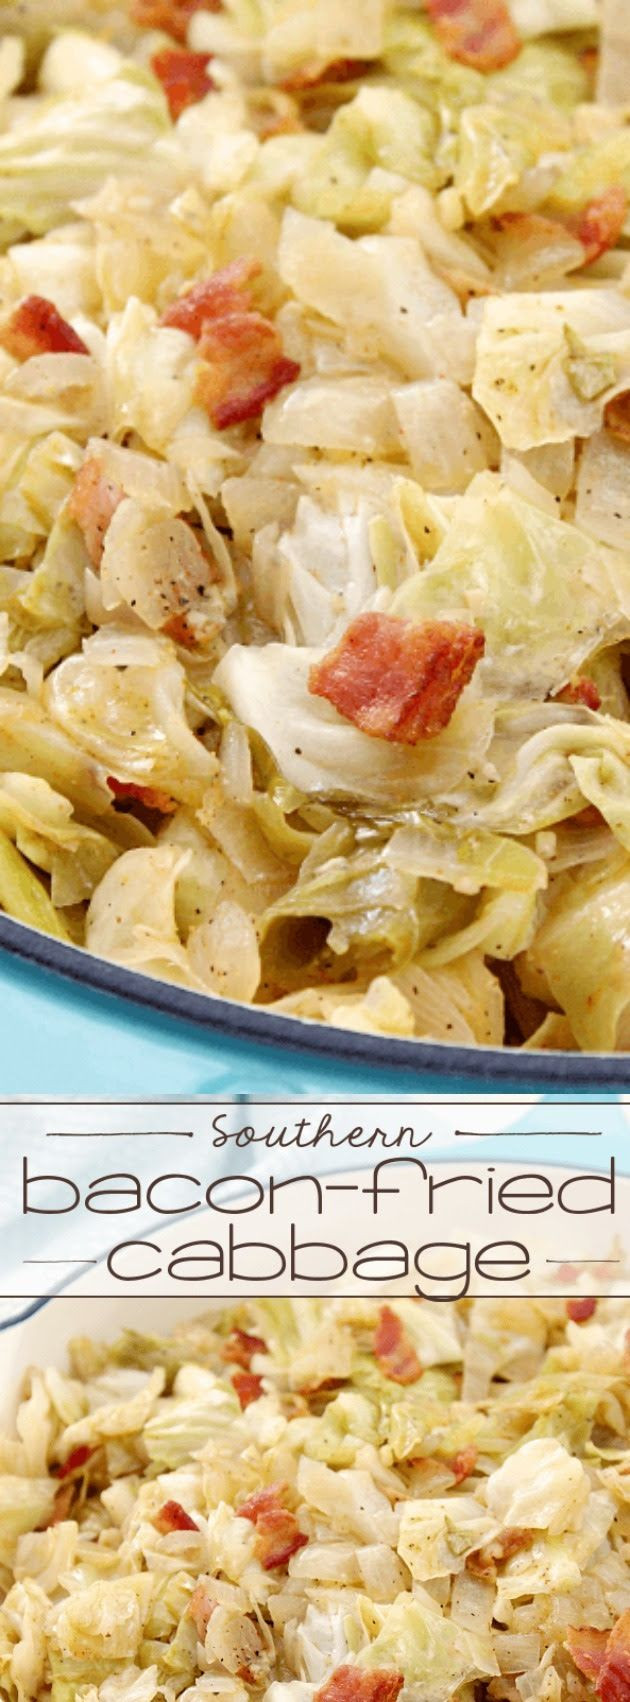 Southern Bacon Fried Cabbage  1000 ideas about Southern Food on Pinterest